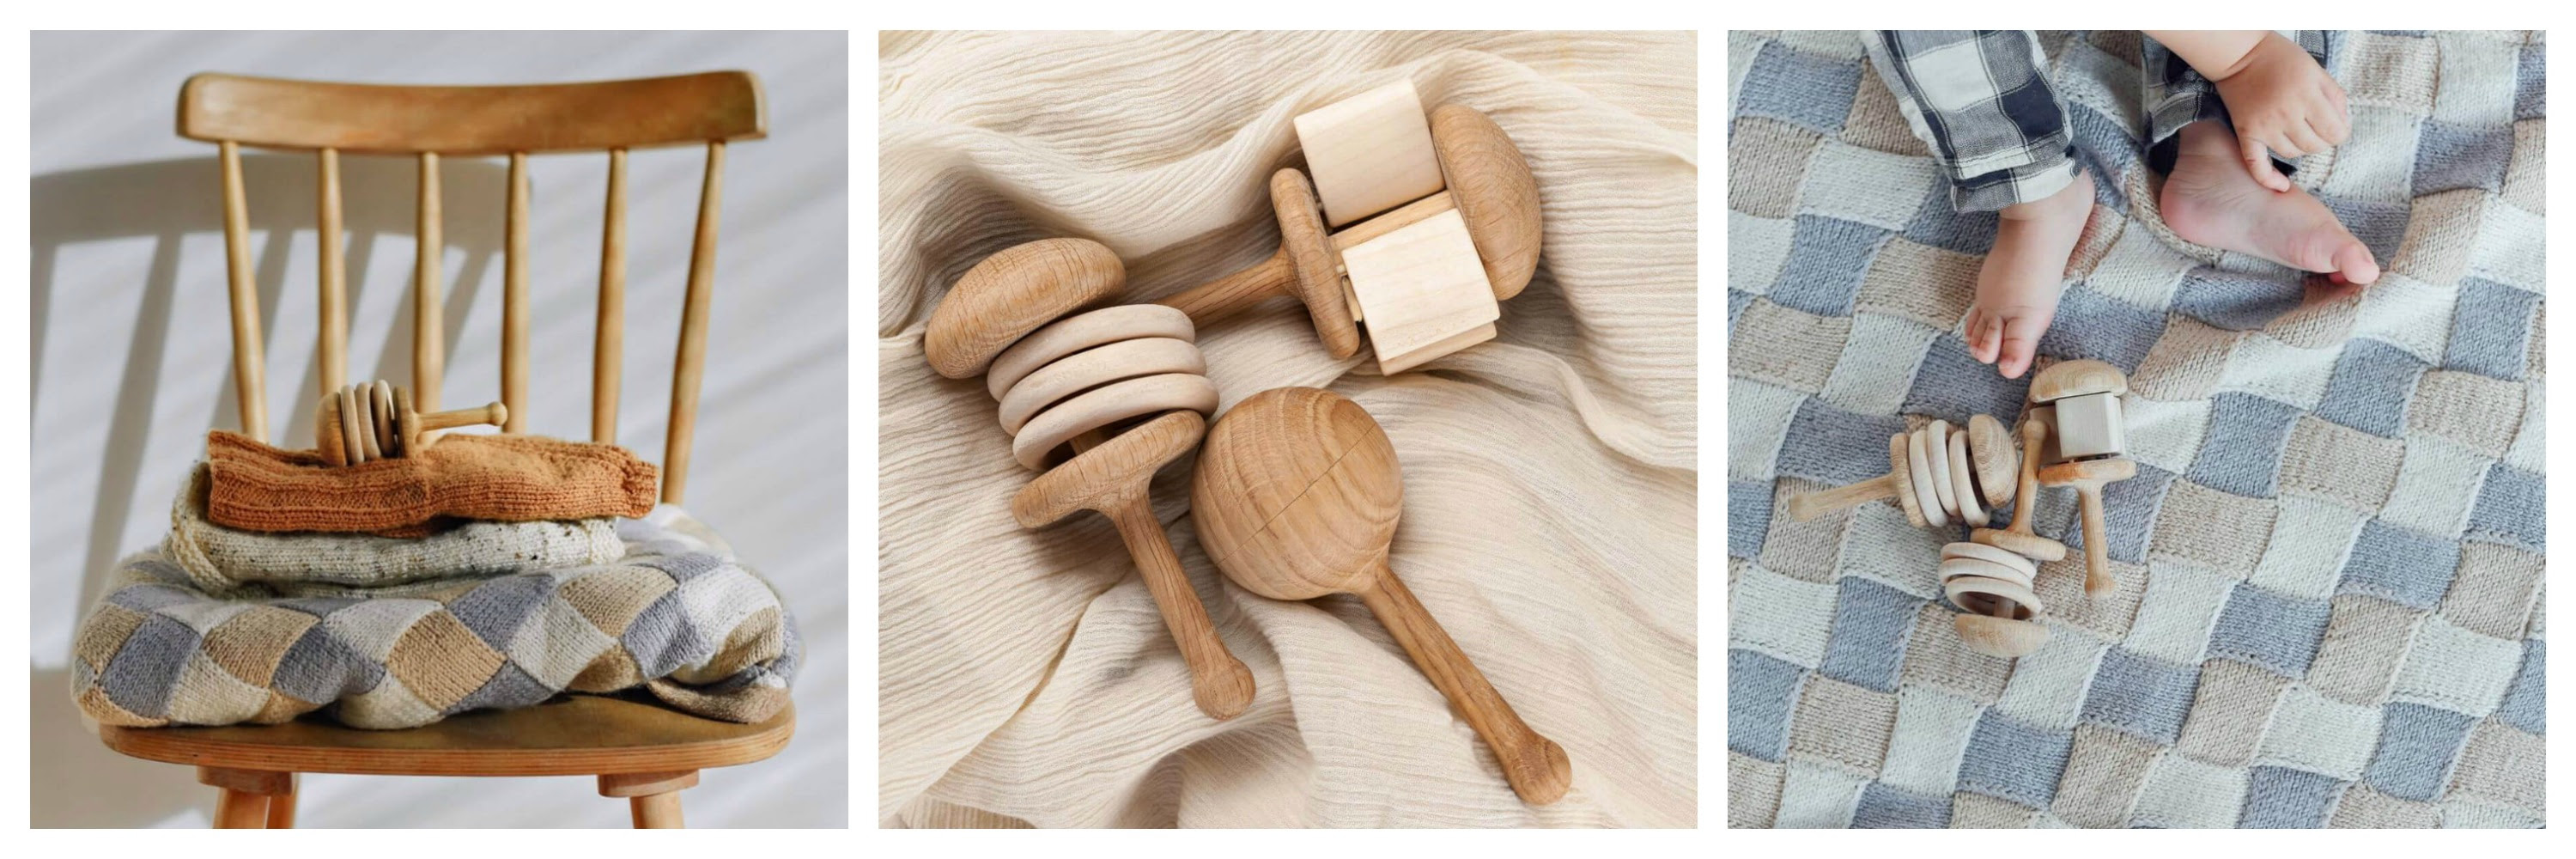 wooden baby rattle on chair